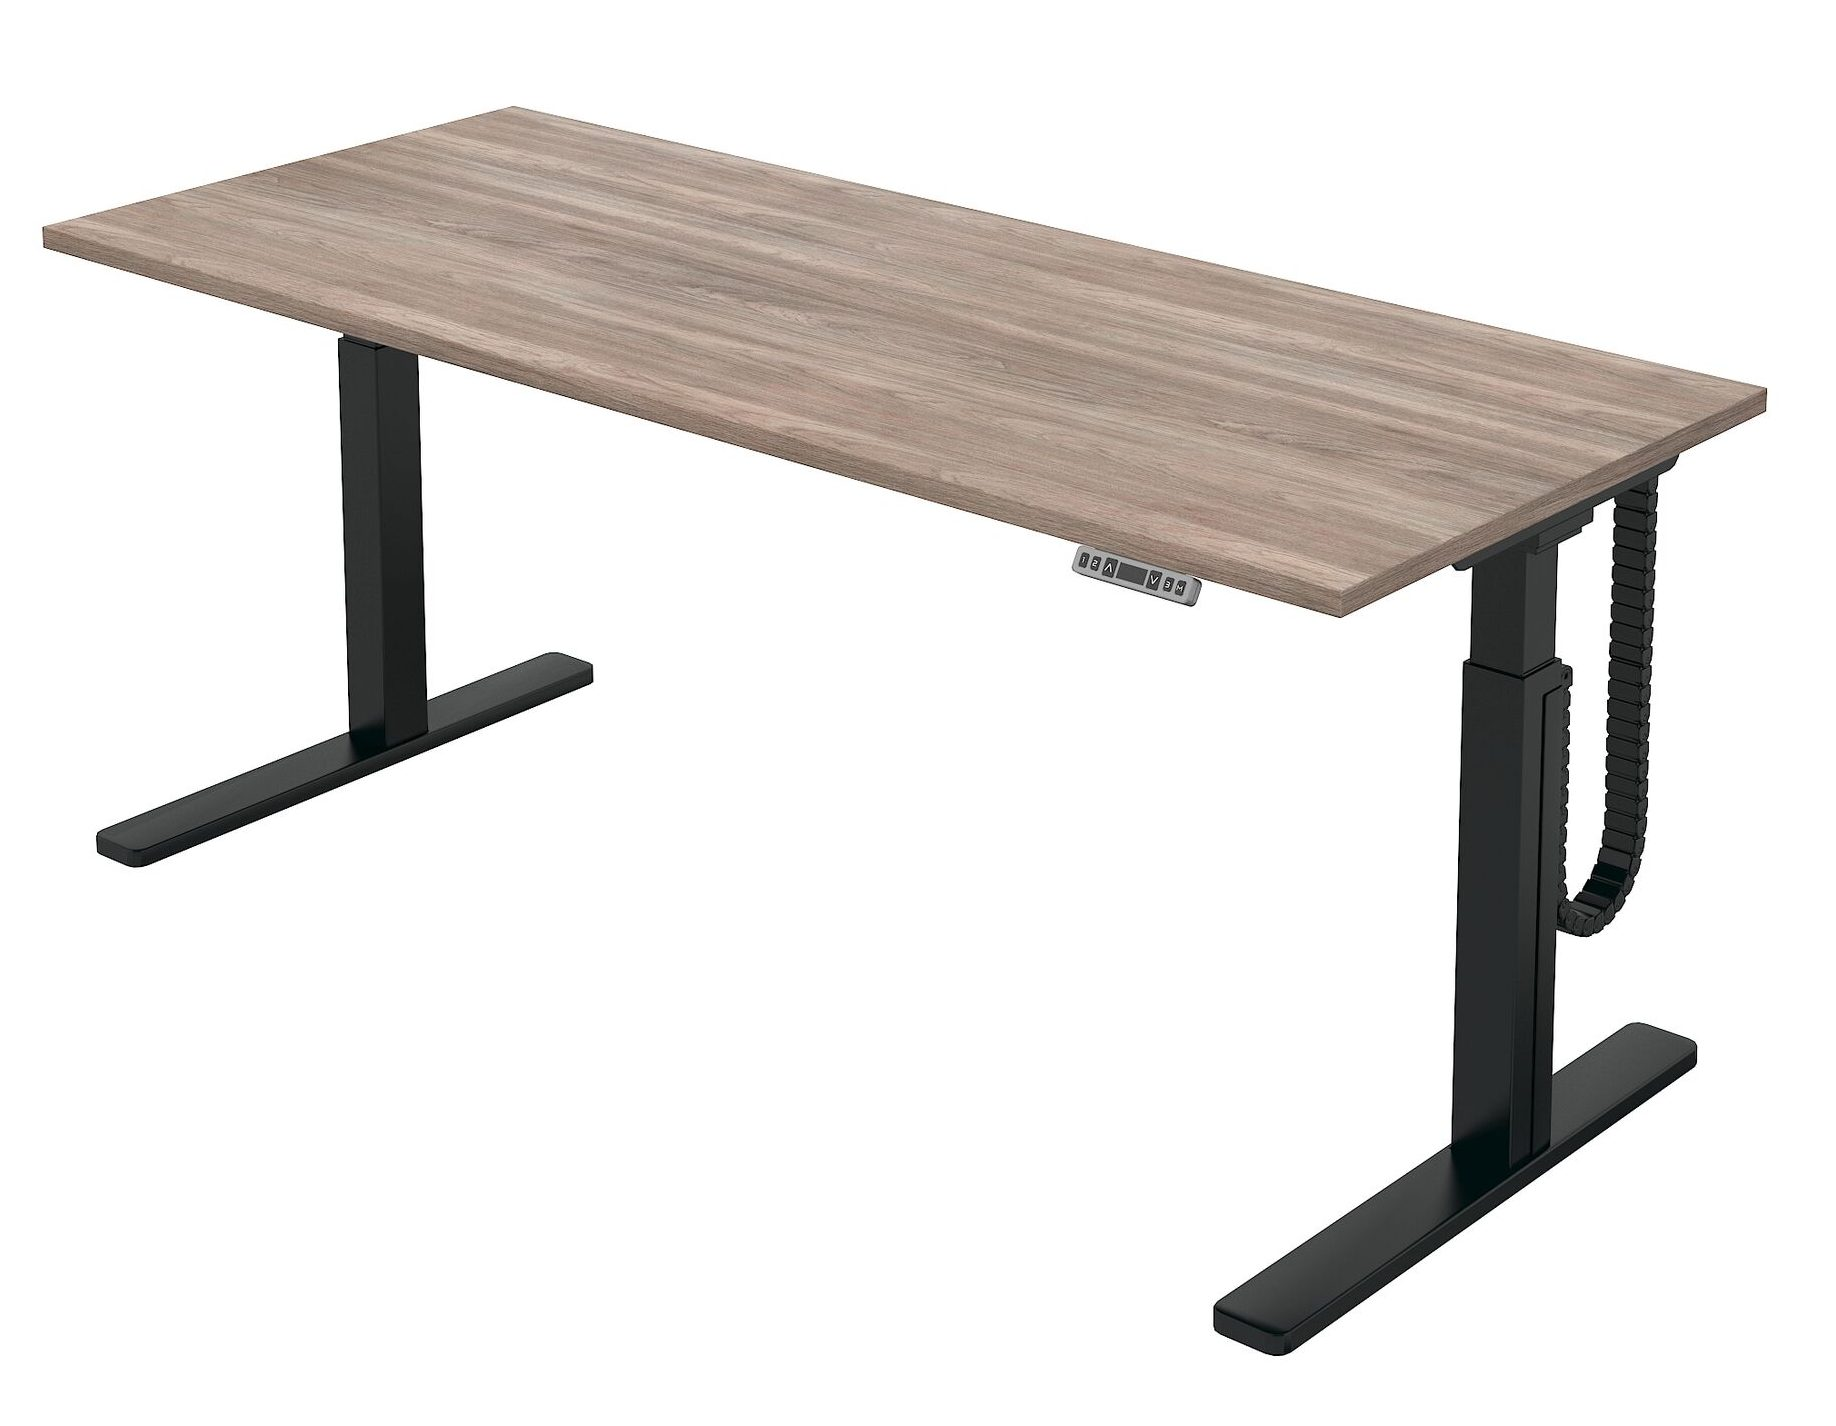 Teknion hiSpace height-adjustable table